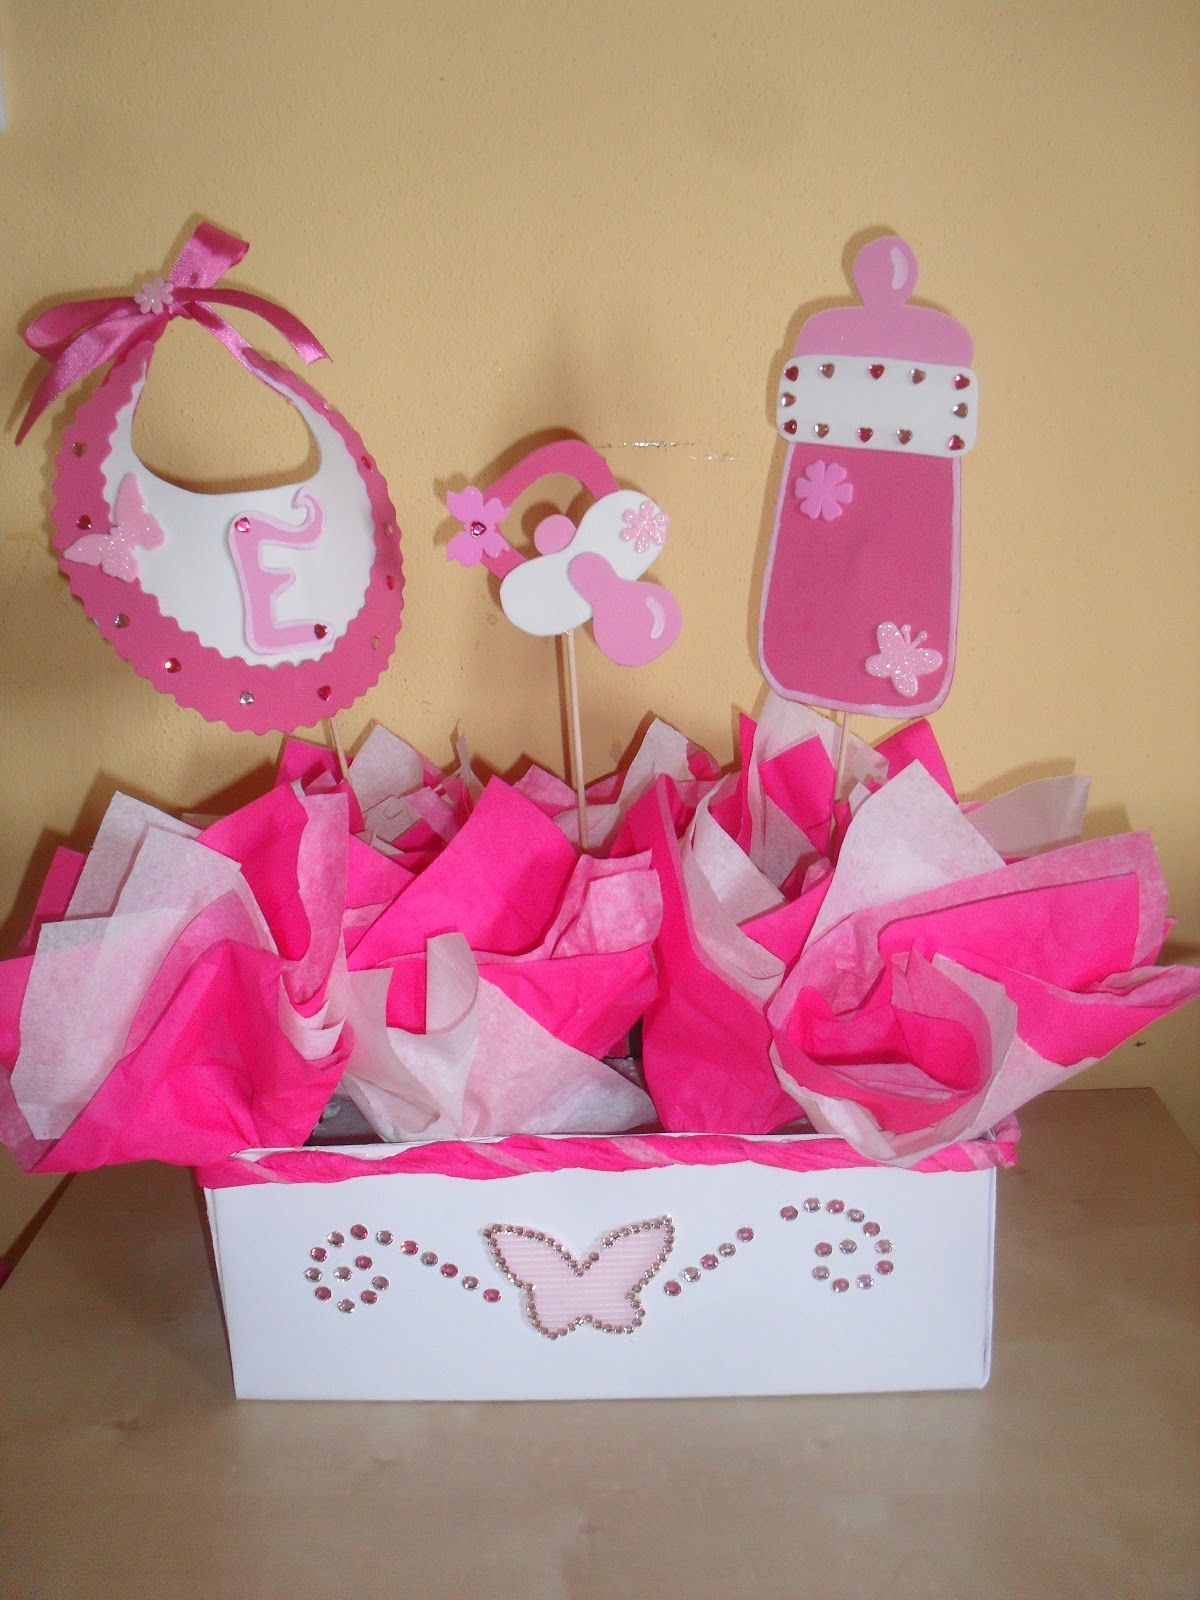 N wonderful decoraciones para baby shower en puerto rico Decoraciones para ninas